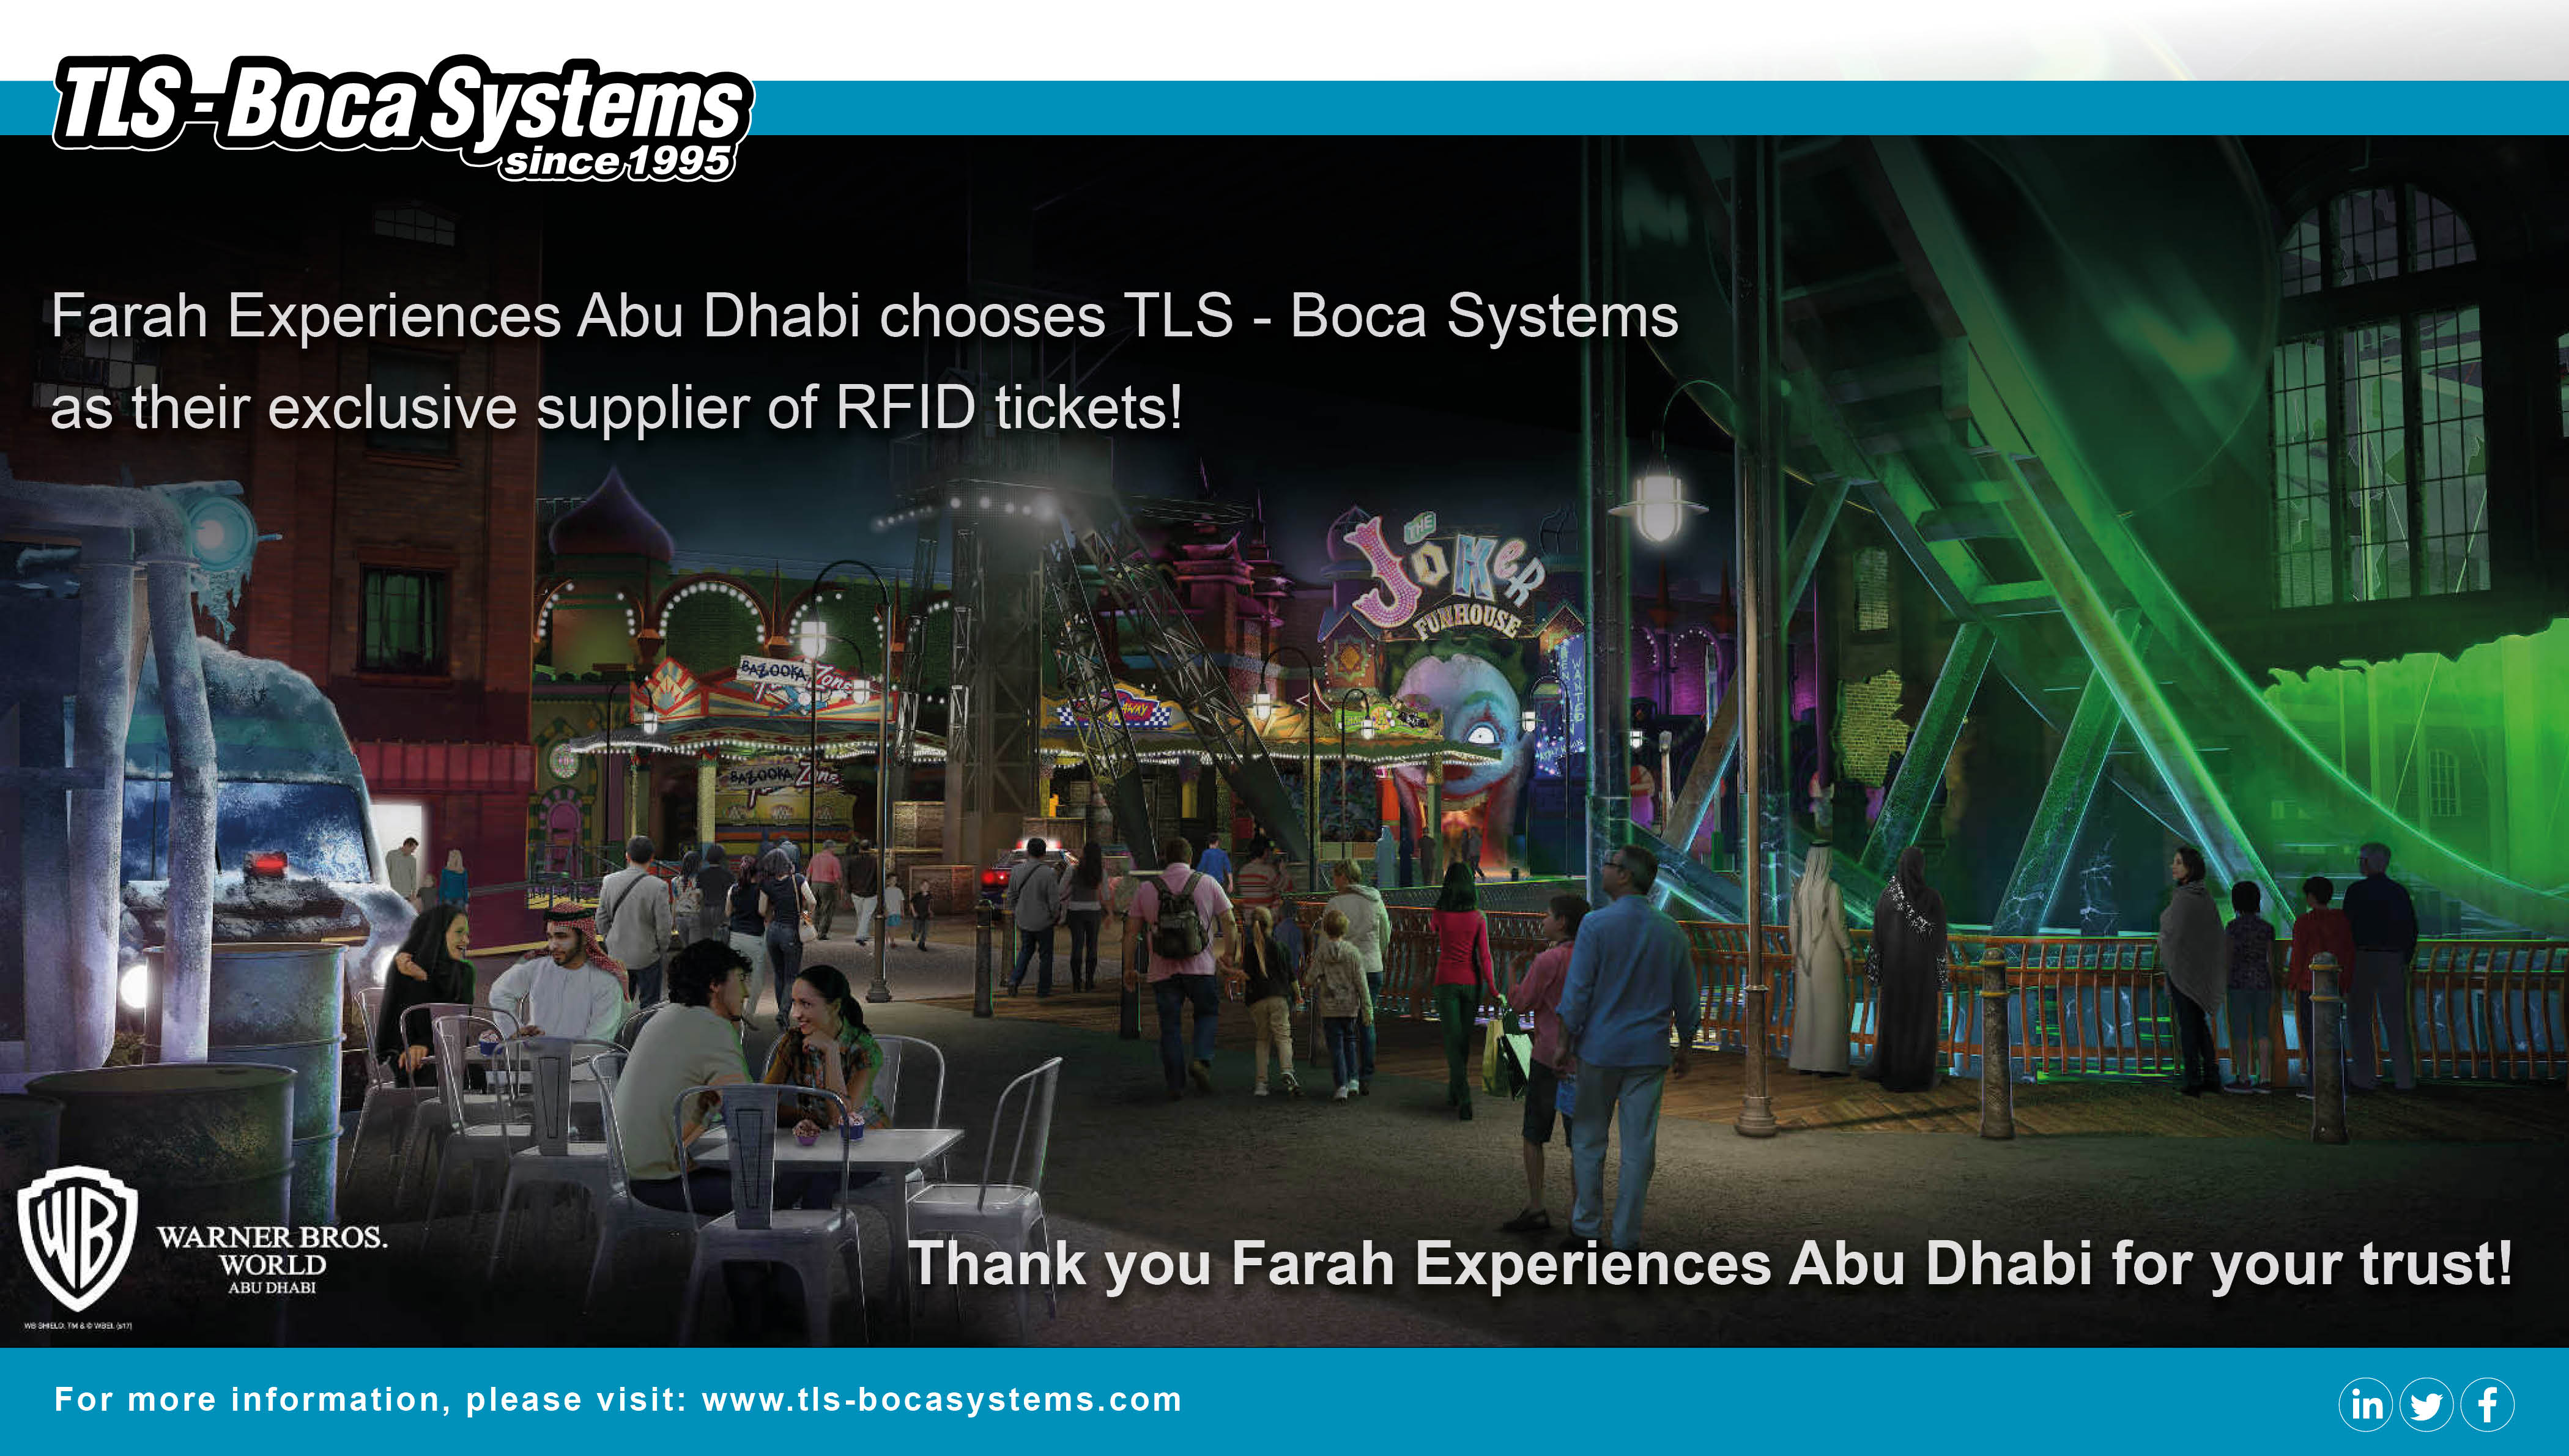 NOW SUPPLYING: FARAH EXPERIENCES ABU DHABI